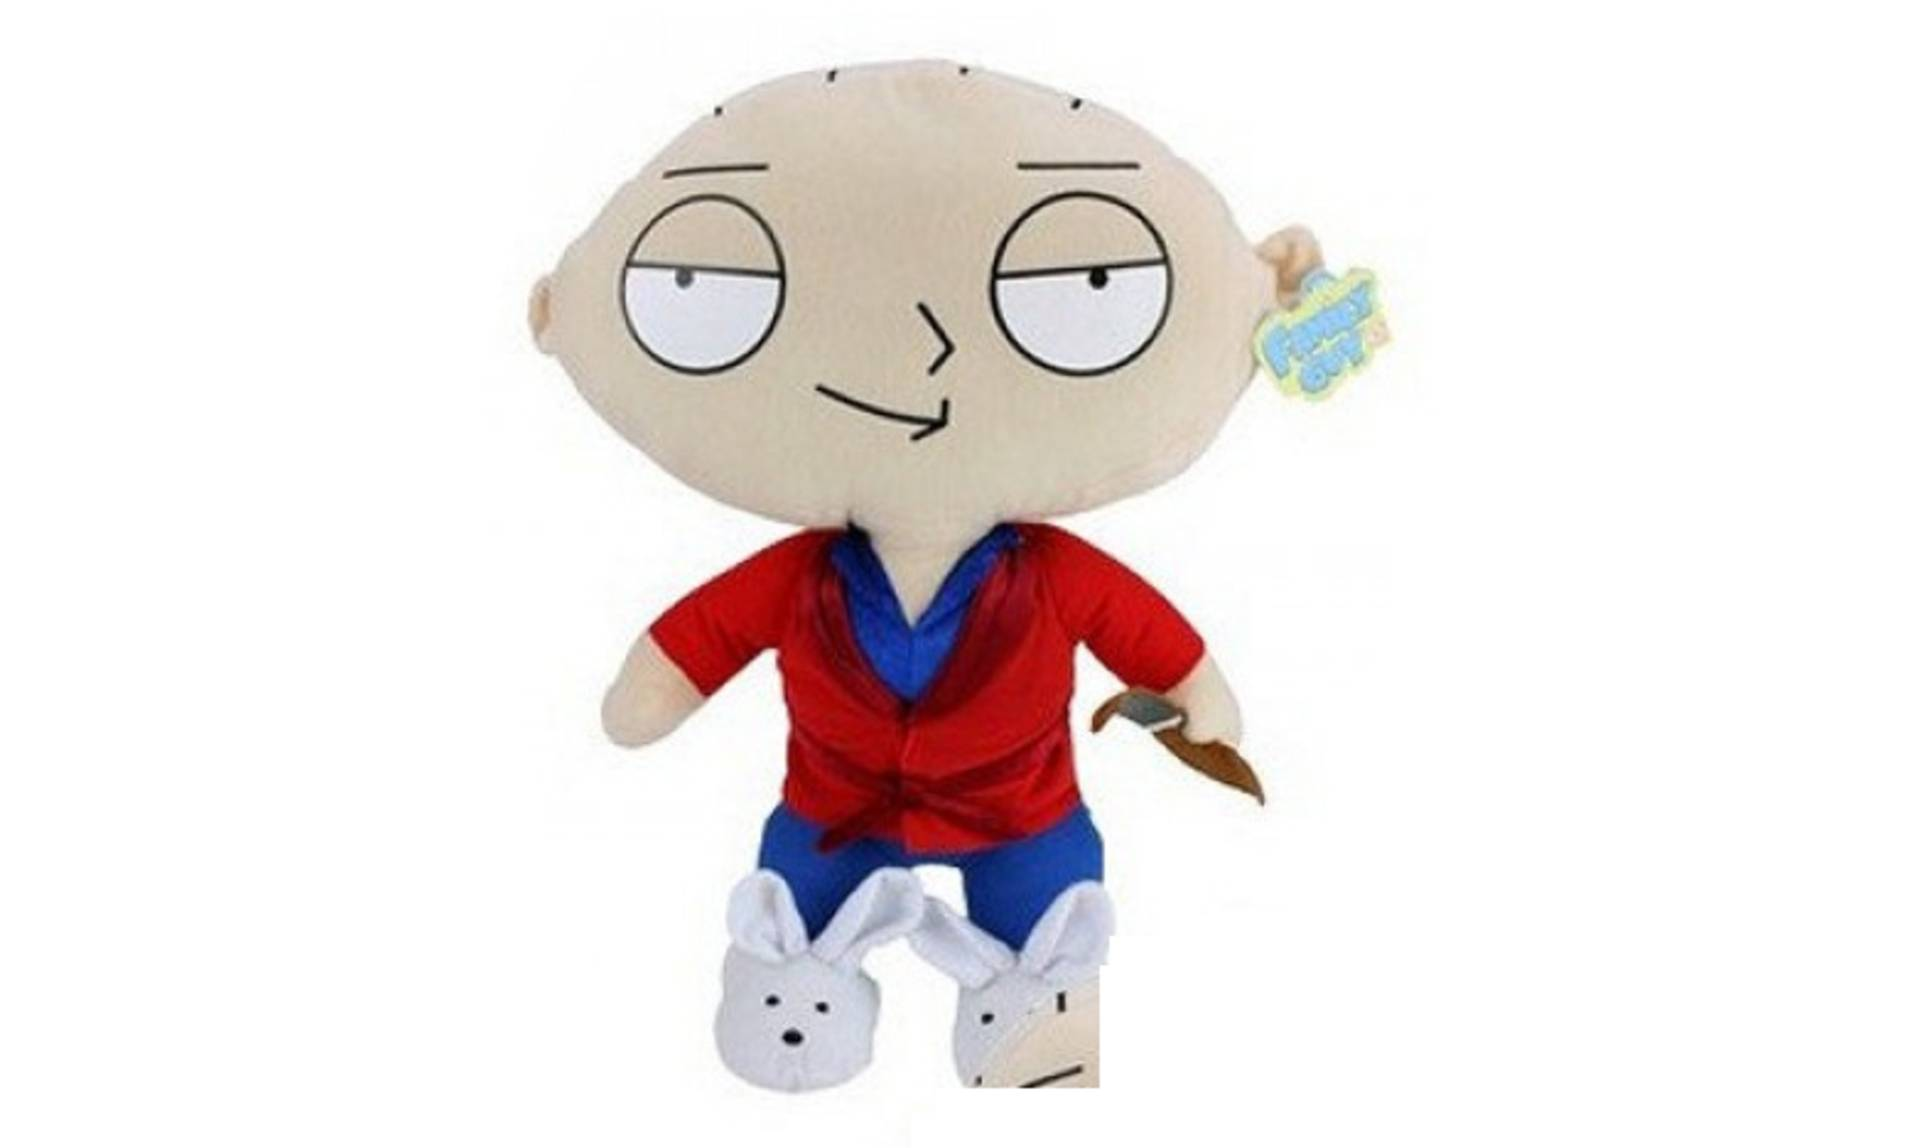 Family Guy Stewie Plush Soft Toy - 54cm - Lounge Suit with Pipe